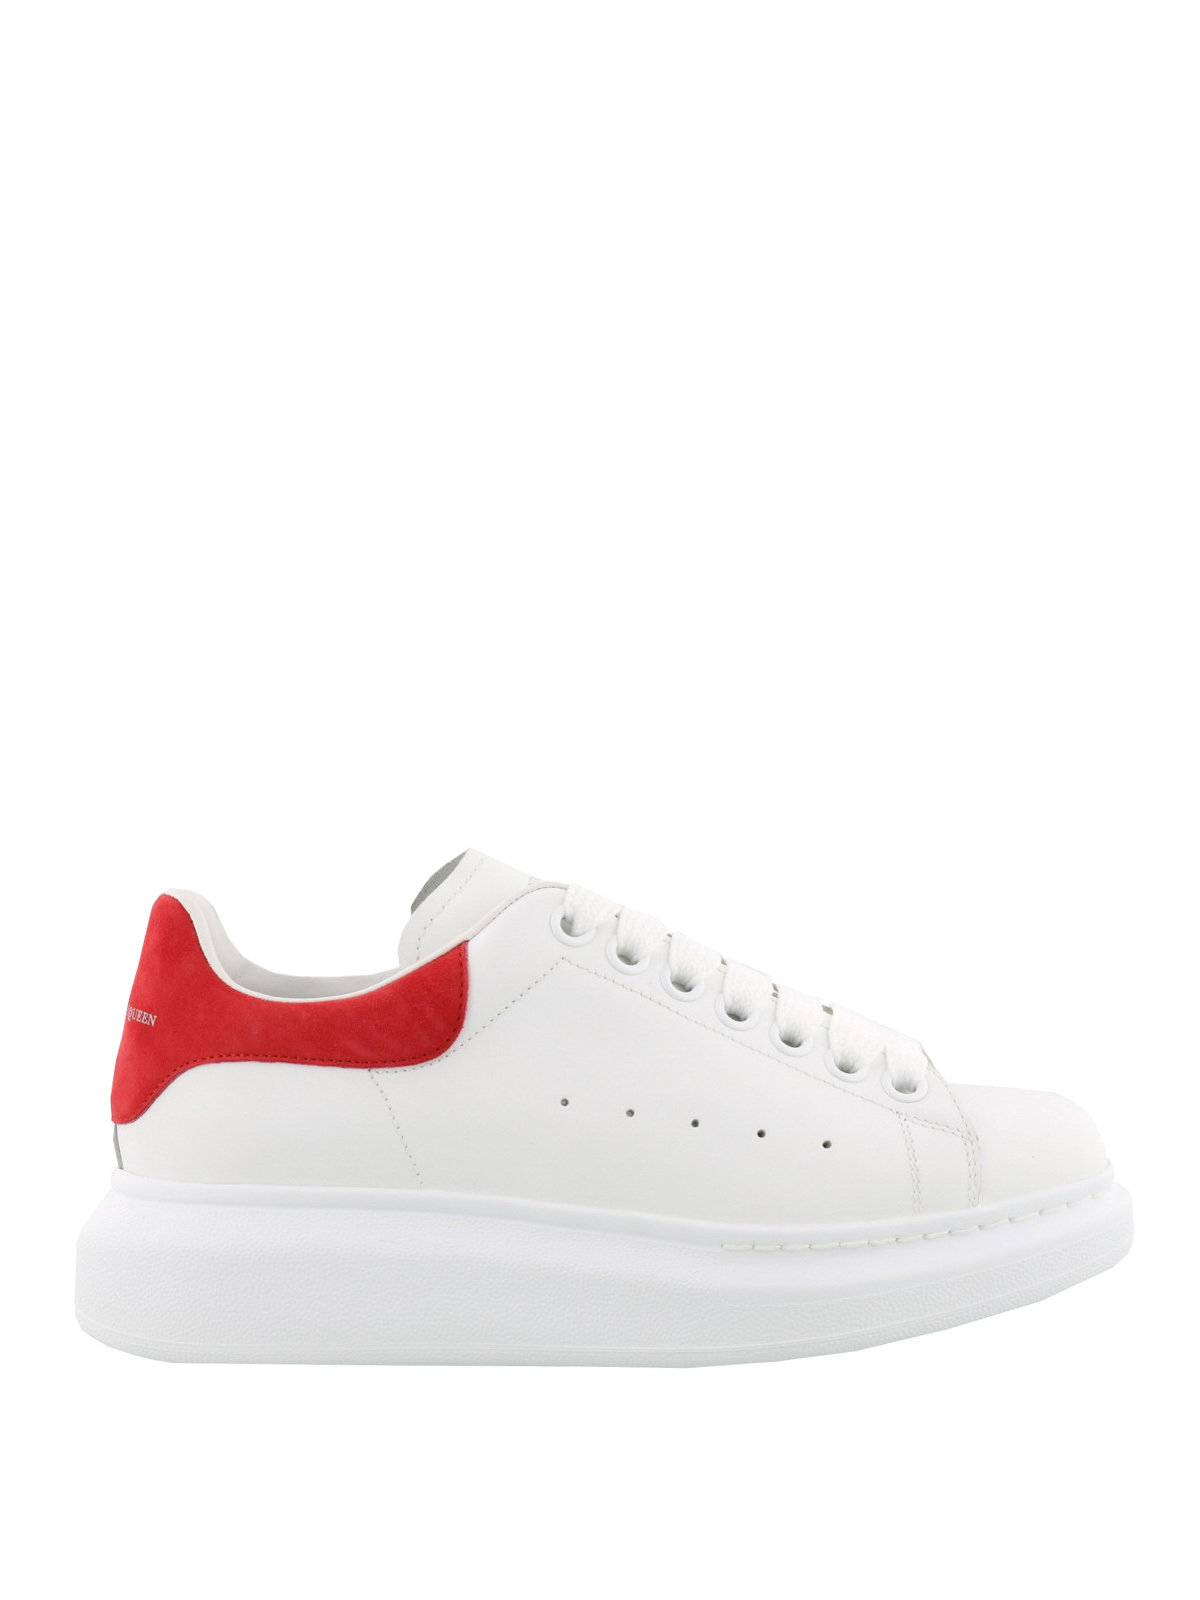 Oversize calf leather sneakers